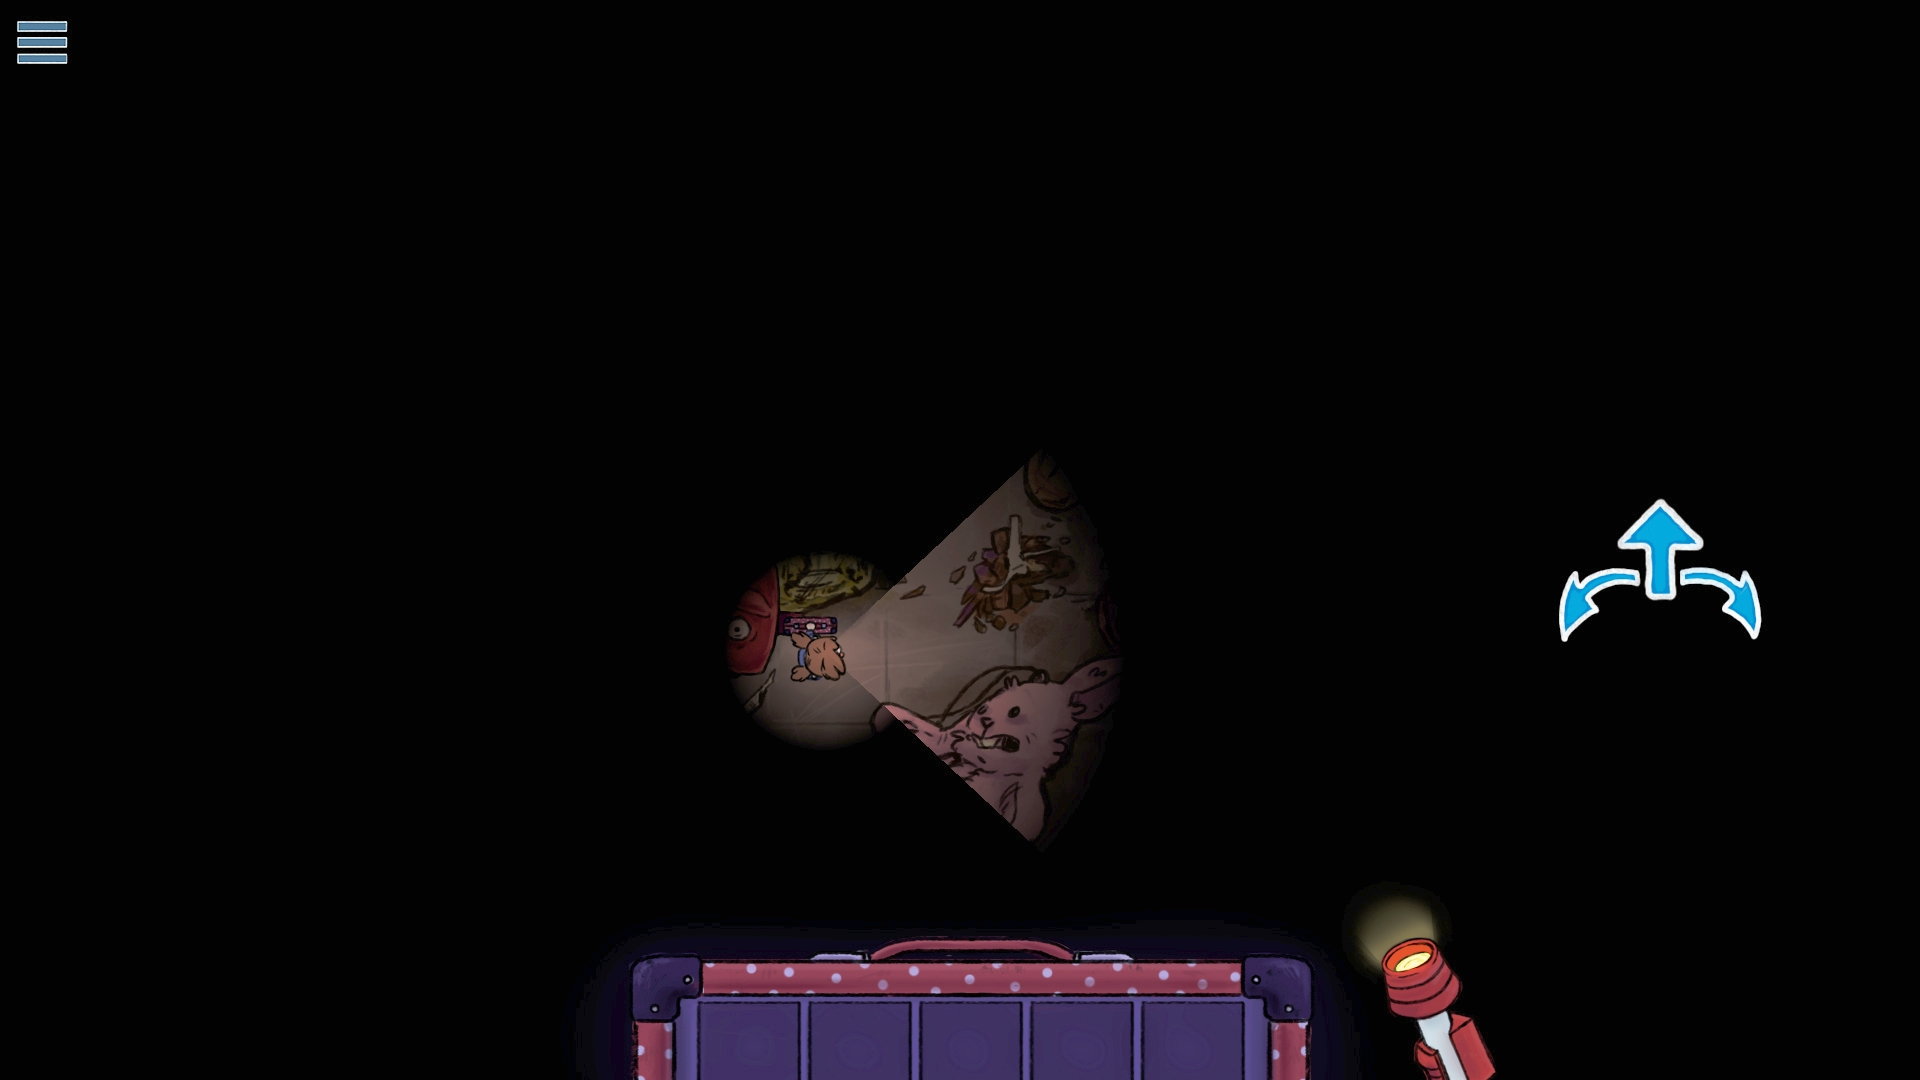 In-game view from the Ratmaze puzzle